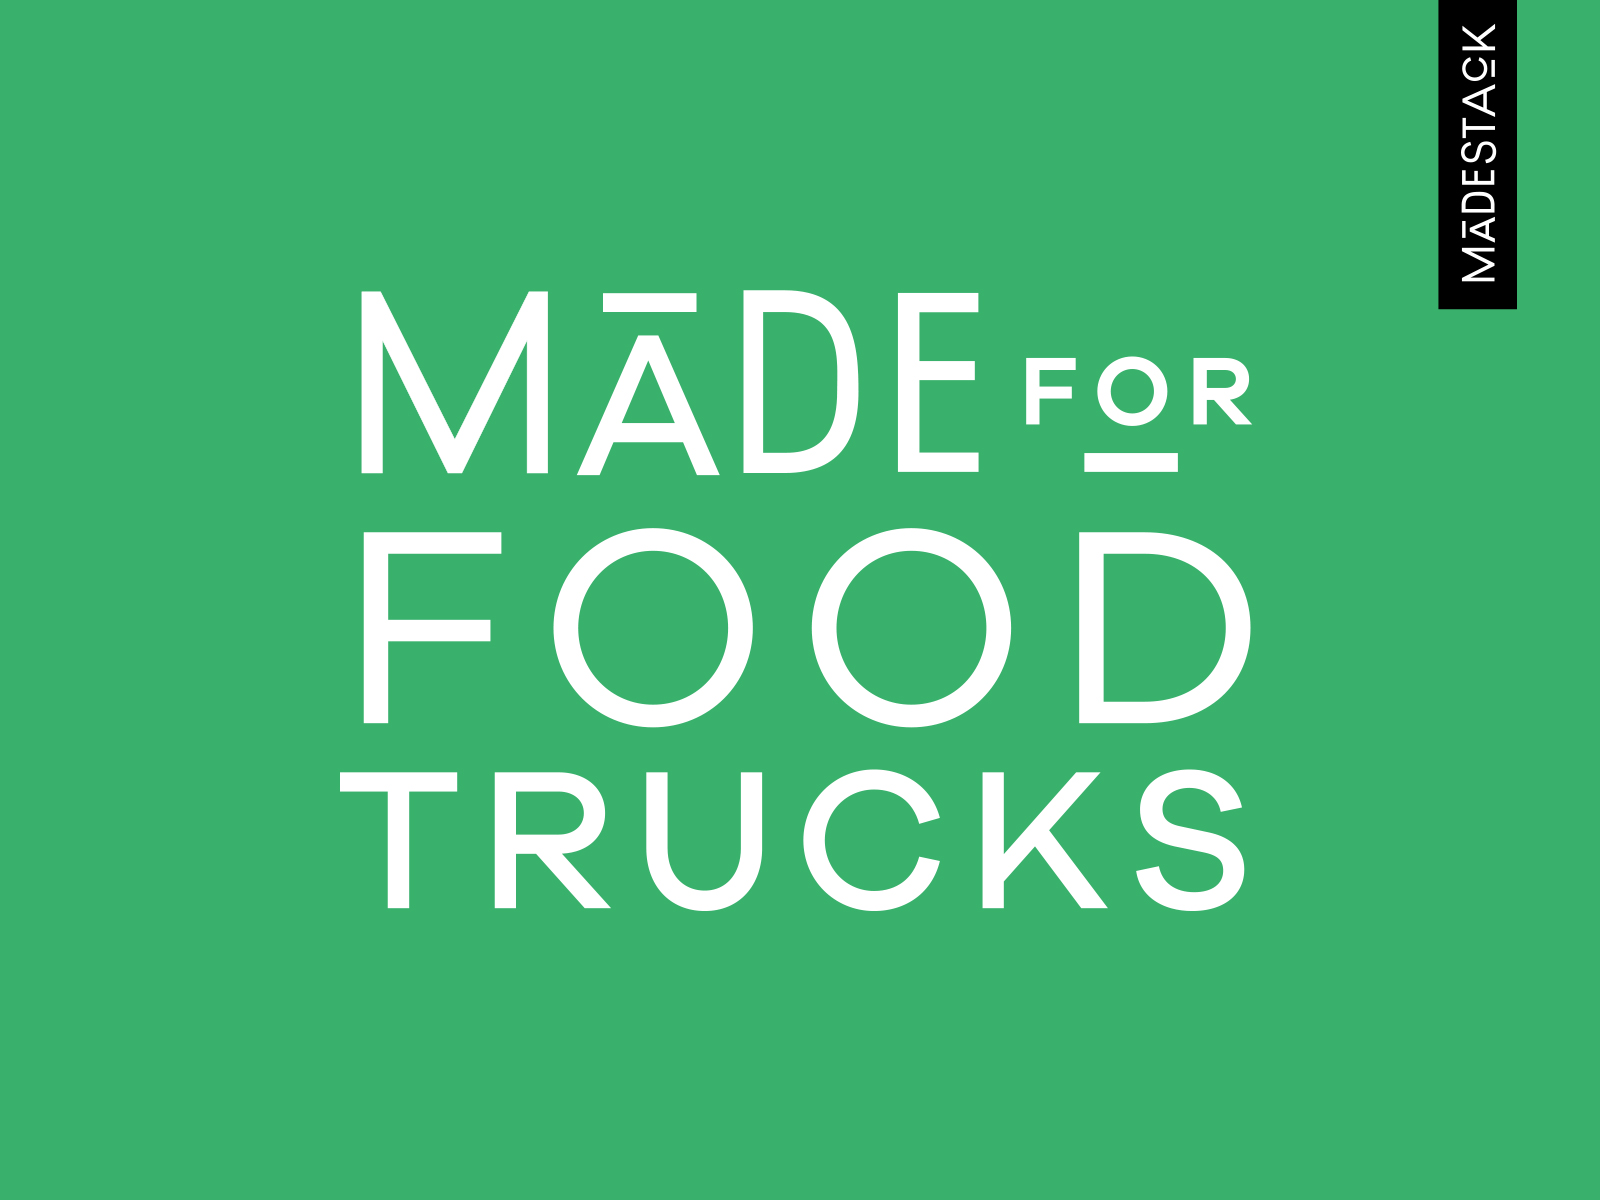 Food truck website design templates done right made for Design food truck online